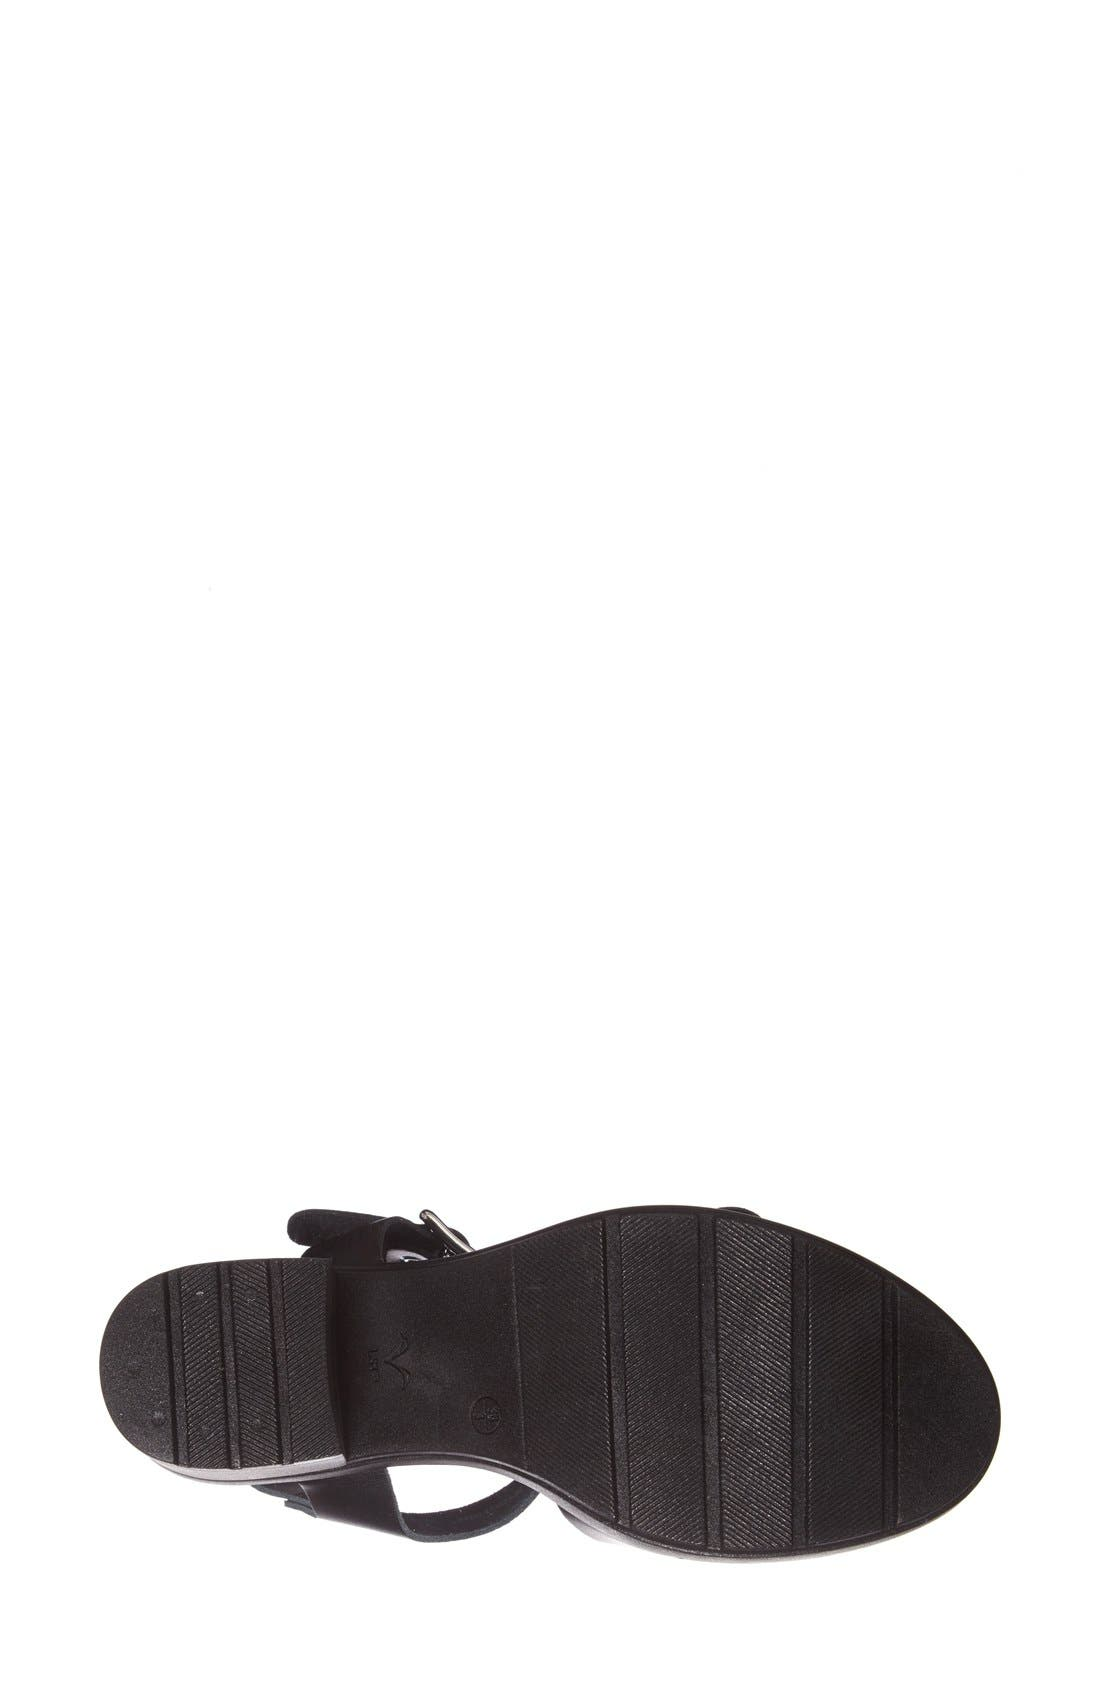 Alternate Image 4  - Topshop 'Niece' Platform Leather Sandal (Women)